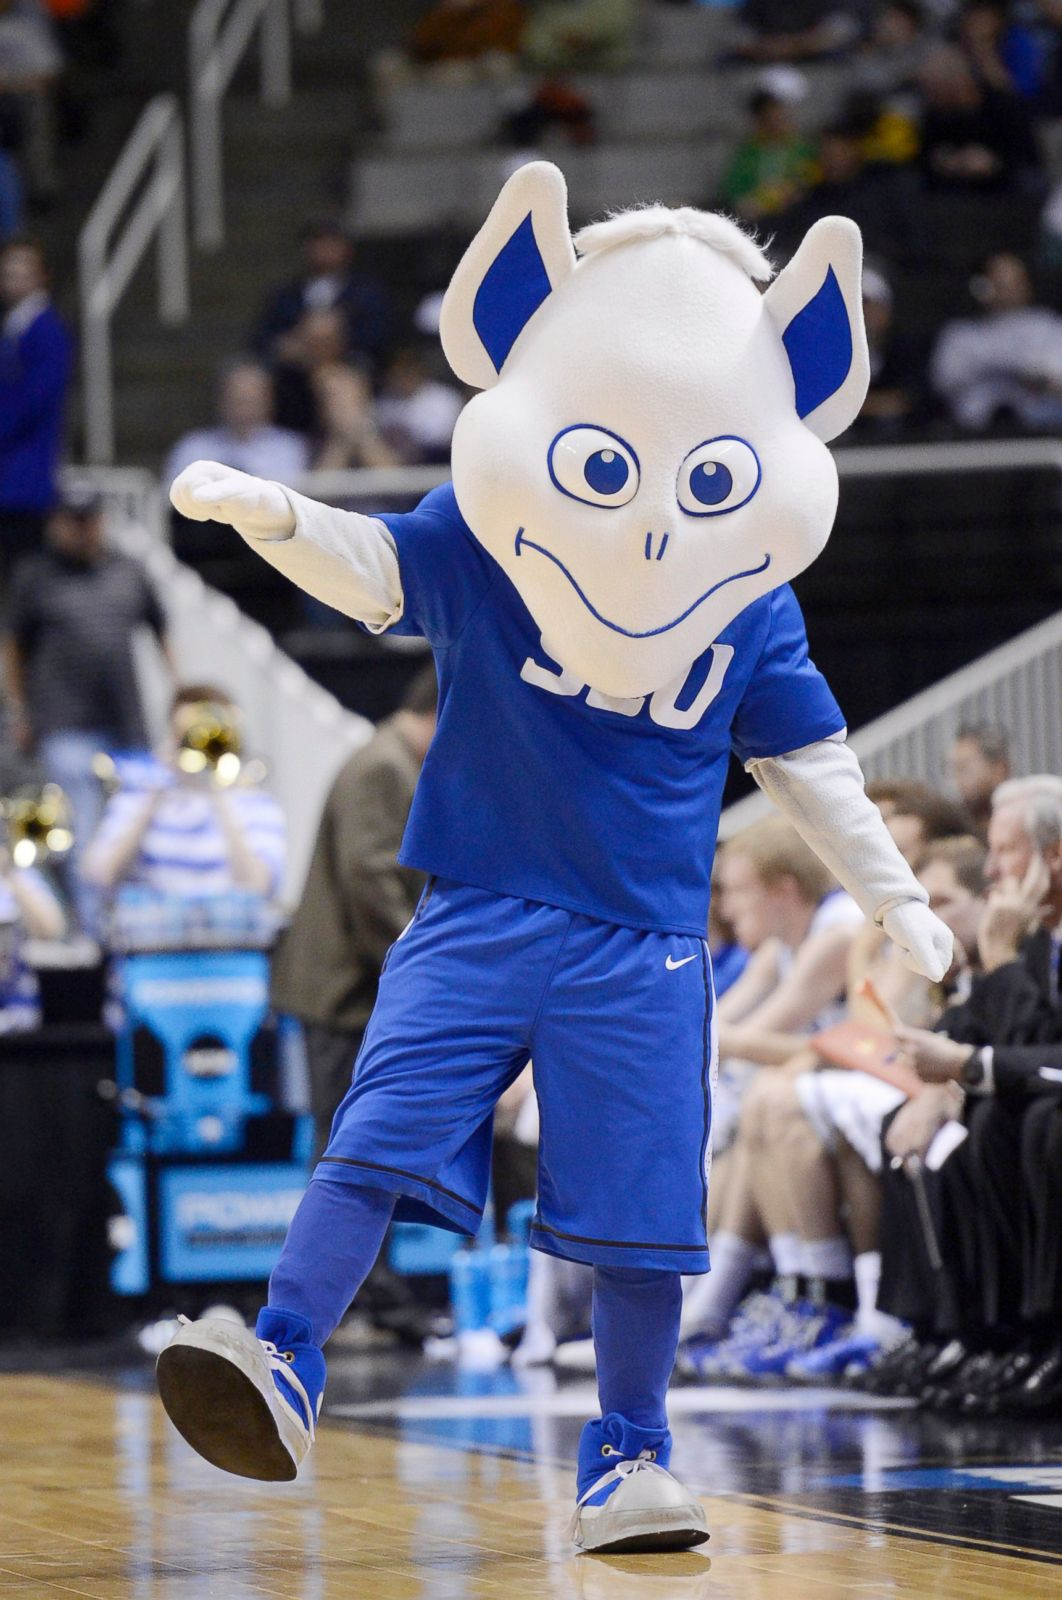 College Basketball Mascots Photos | Image #9 - ABC News